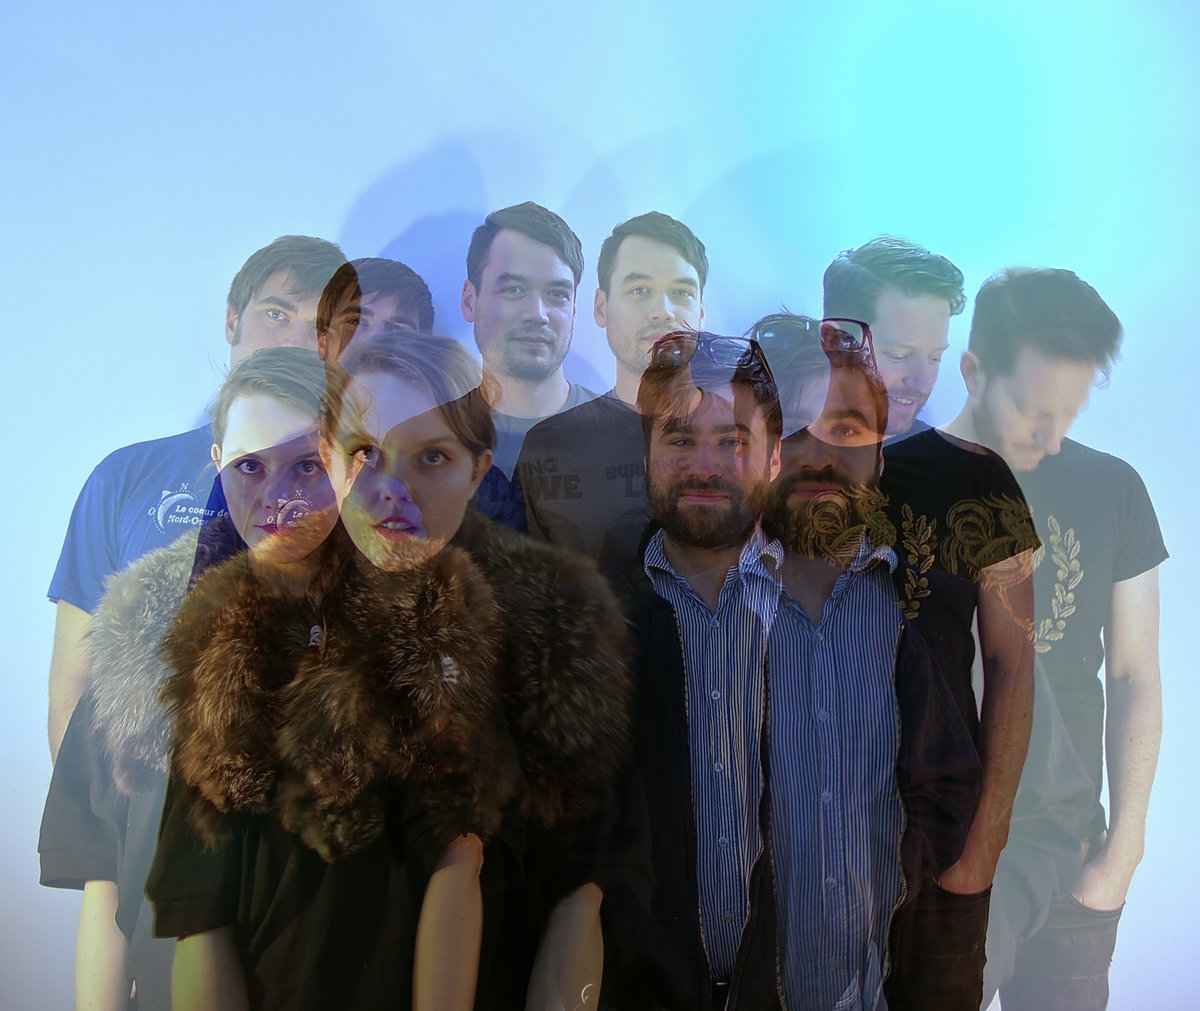 """""""Levitation Sickness"""" by Slow Down Molasses is Northern Transmissions' 'Song of the Day'."""